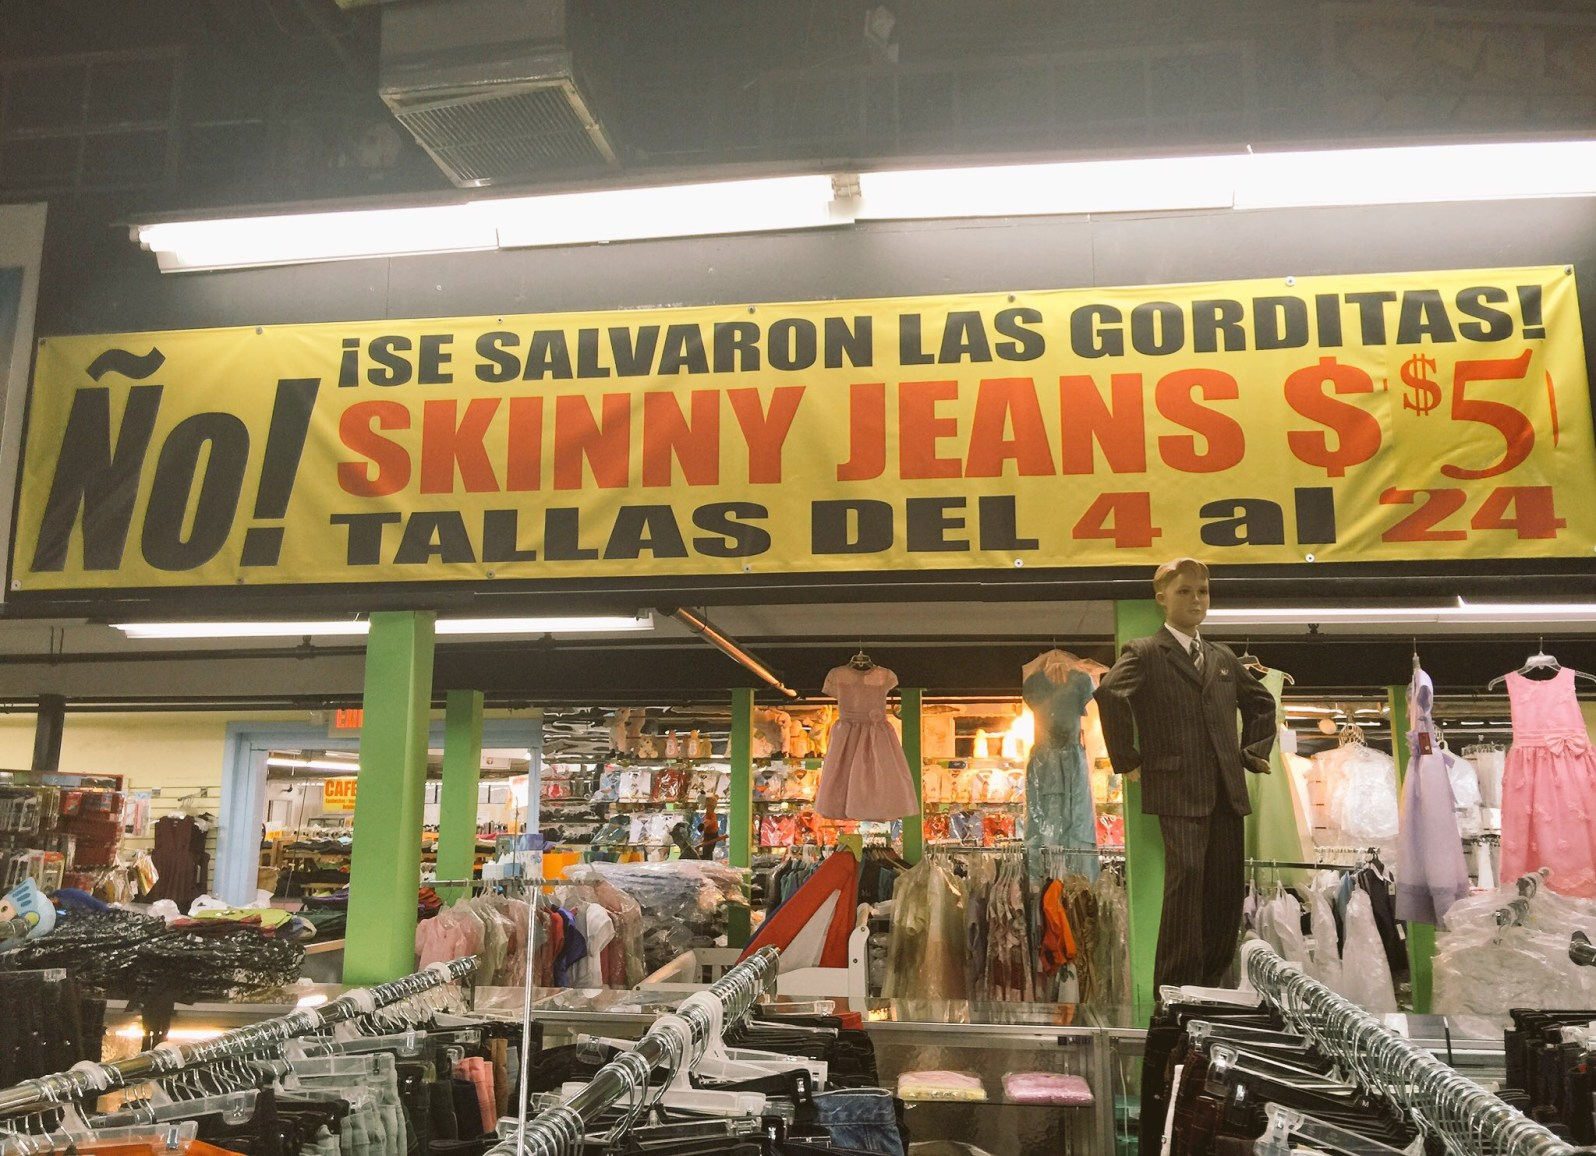 They've got skinny jeans of all sizes at Ñooo! Que Barato! (Courtesy of Maria de los Angeles)